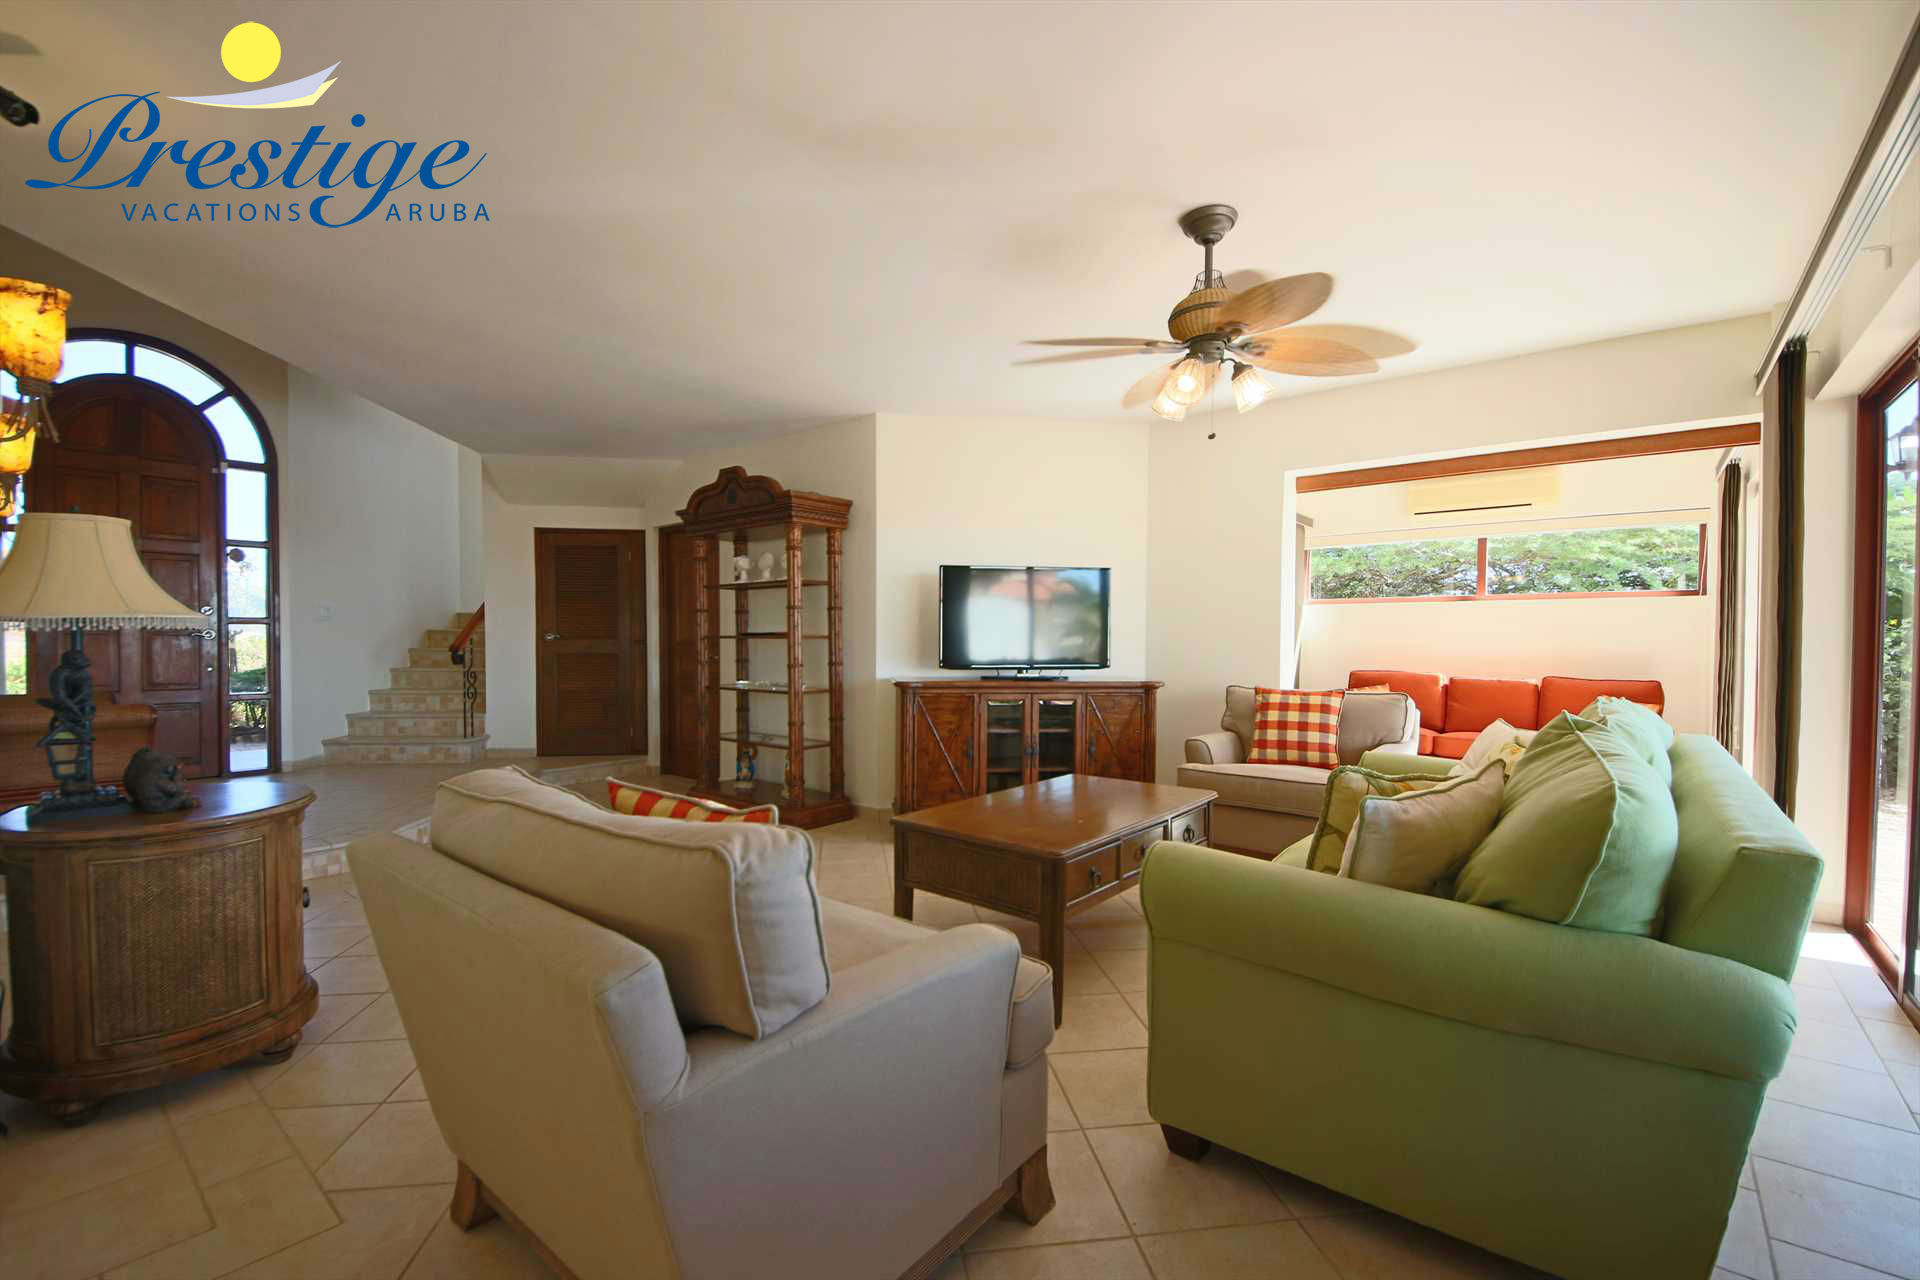 The living area with a 3-seat sofa set plus chairs and a large TV